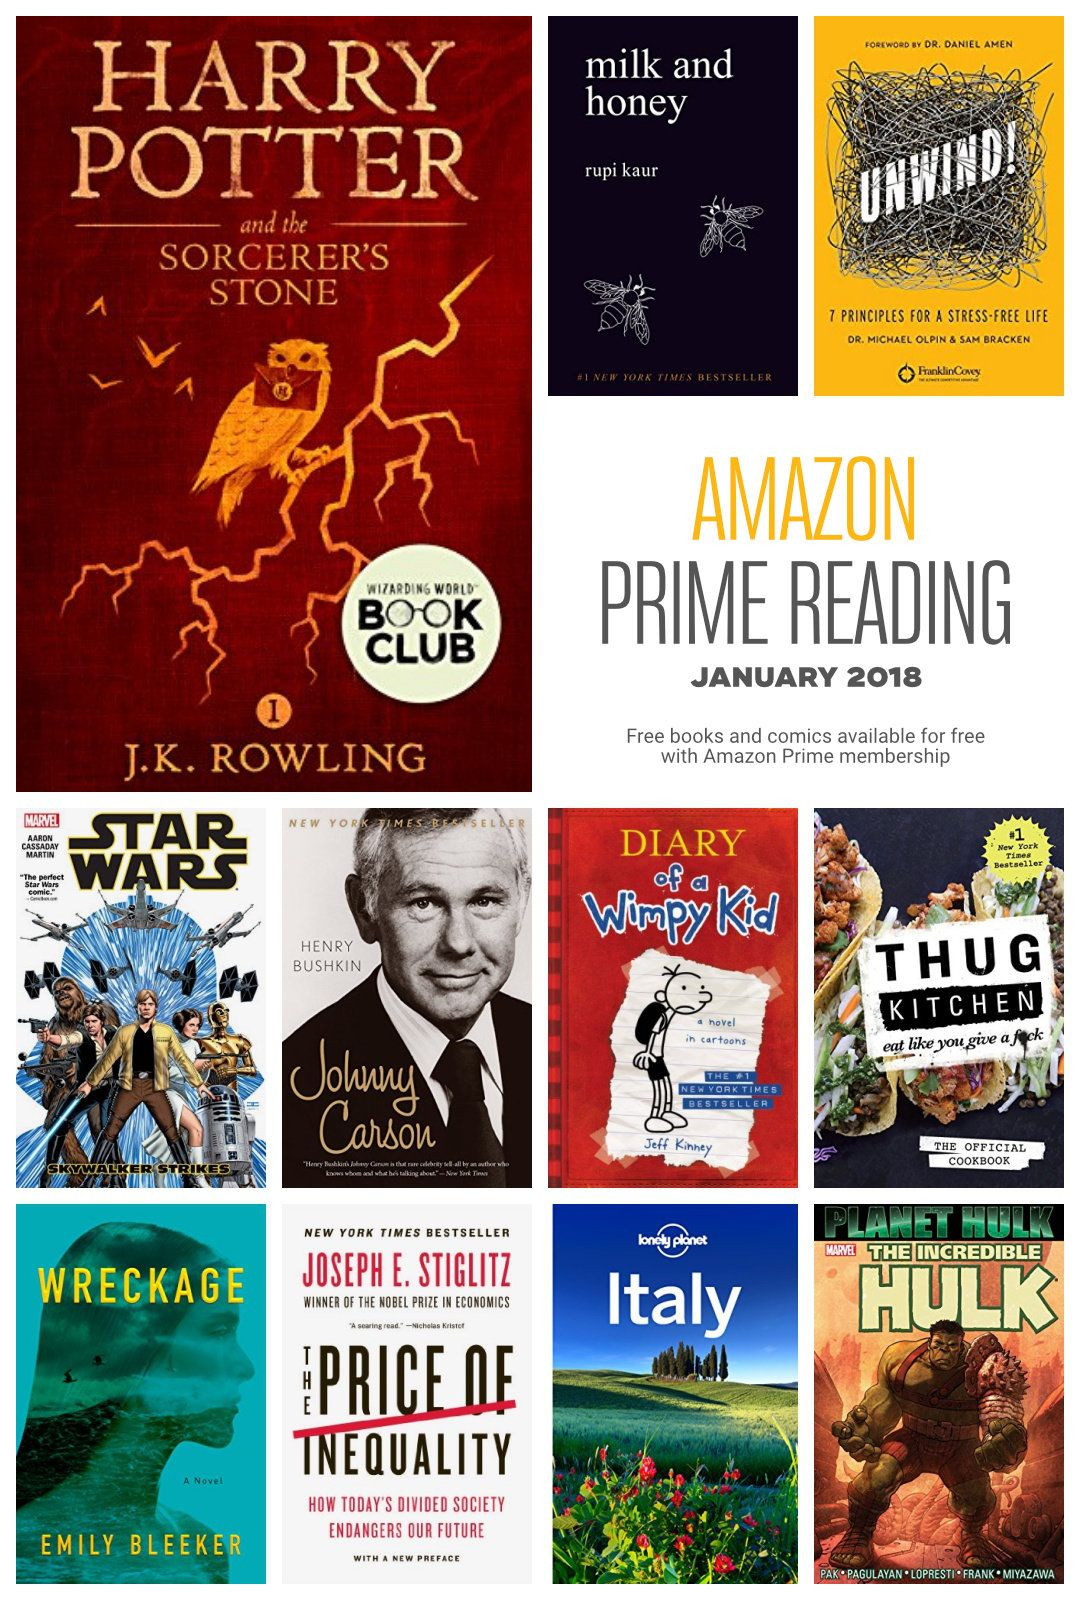 Amazon Prime Reading The 2018 List Of Free Books And Comics New Upcoming Movies Books You Should Read Great Books To Read